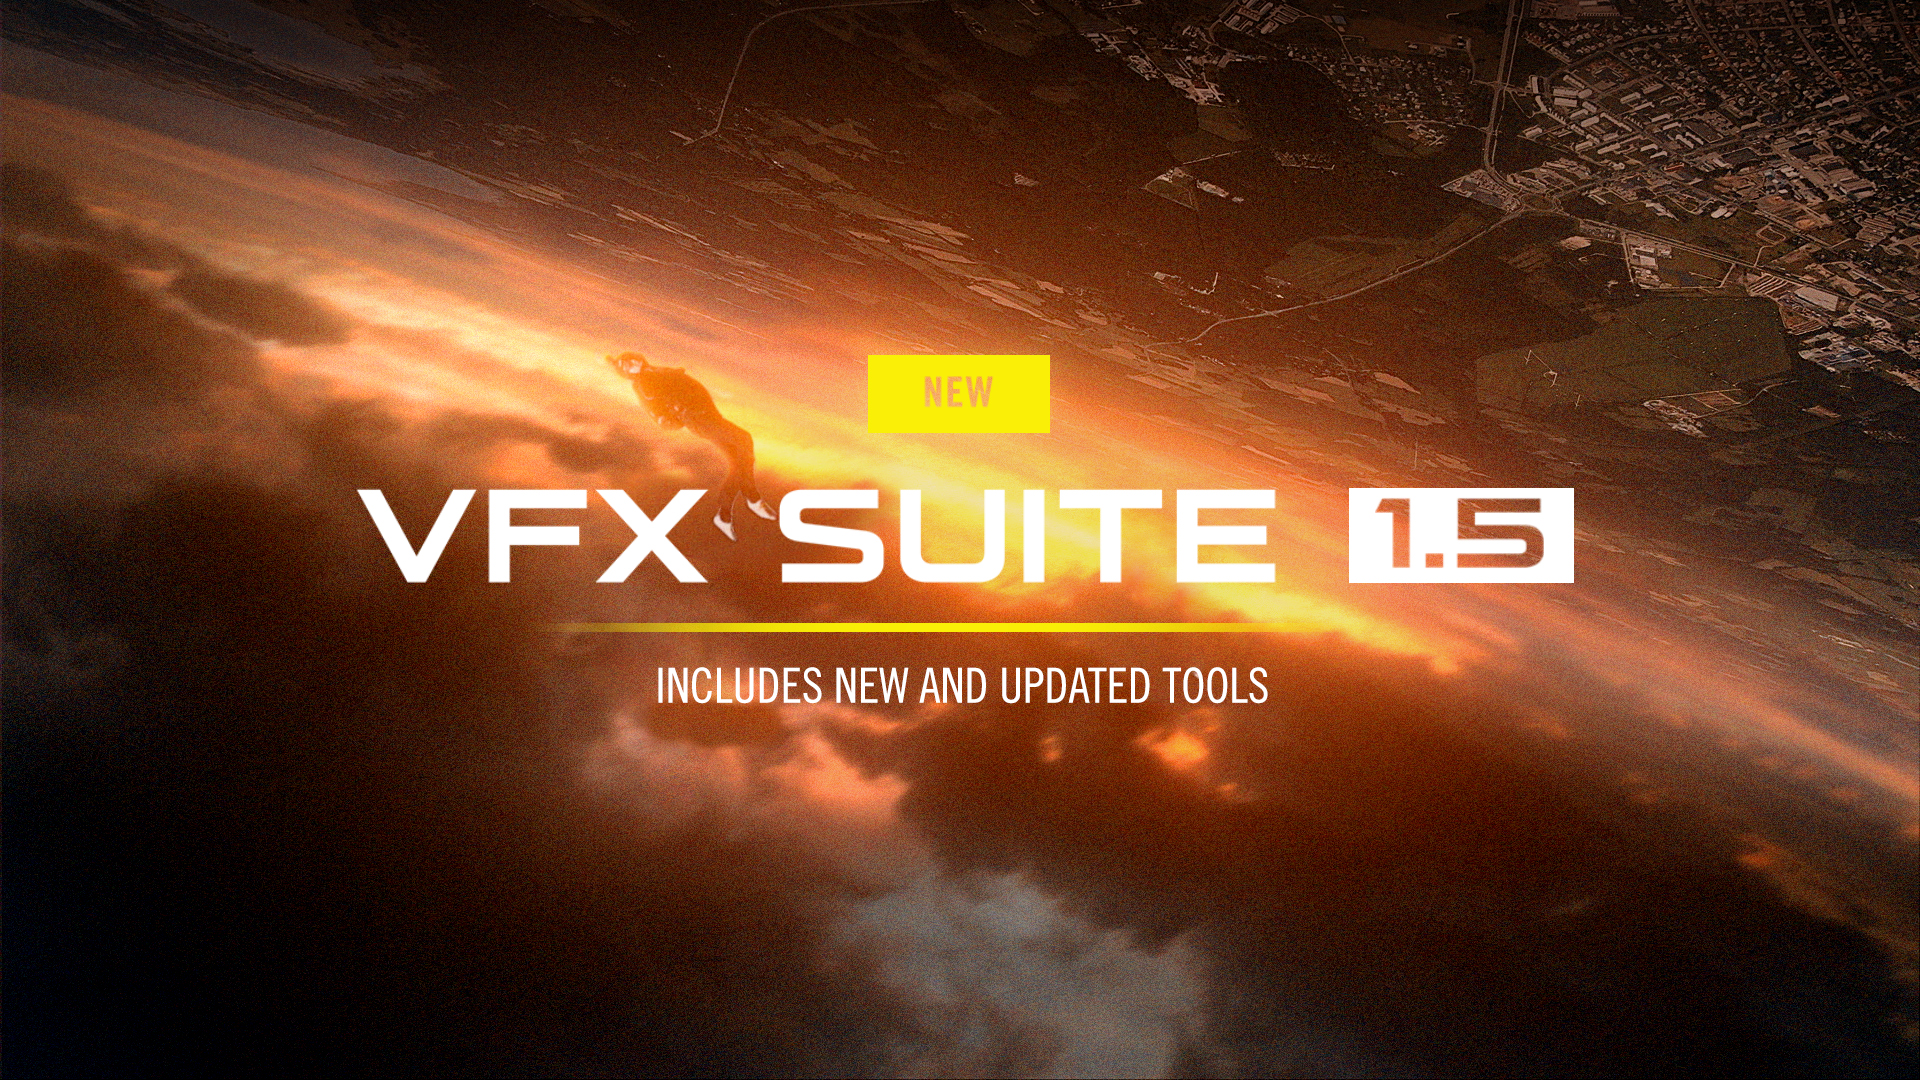 Red Giant VFX Suite 1.5: Lens Distortion Plus More Tools for After Effects